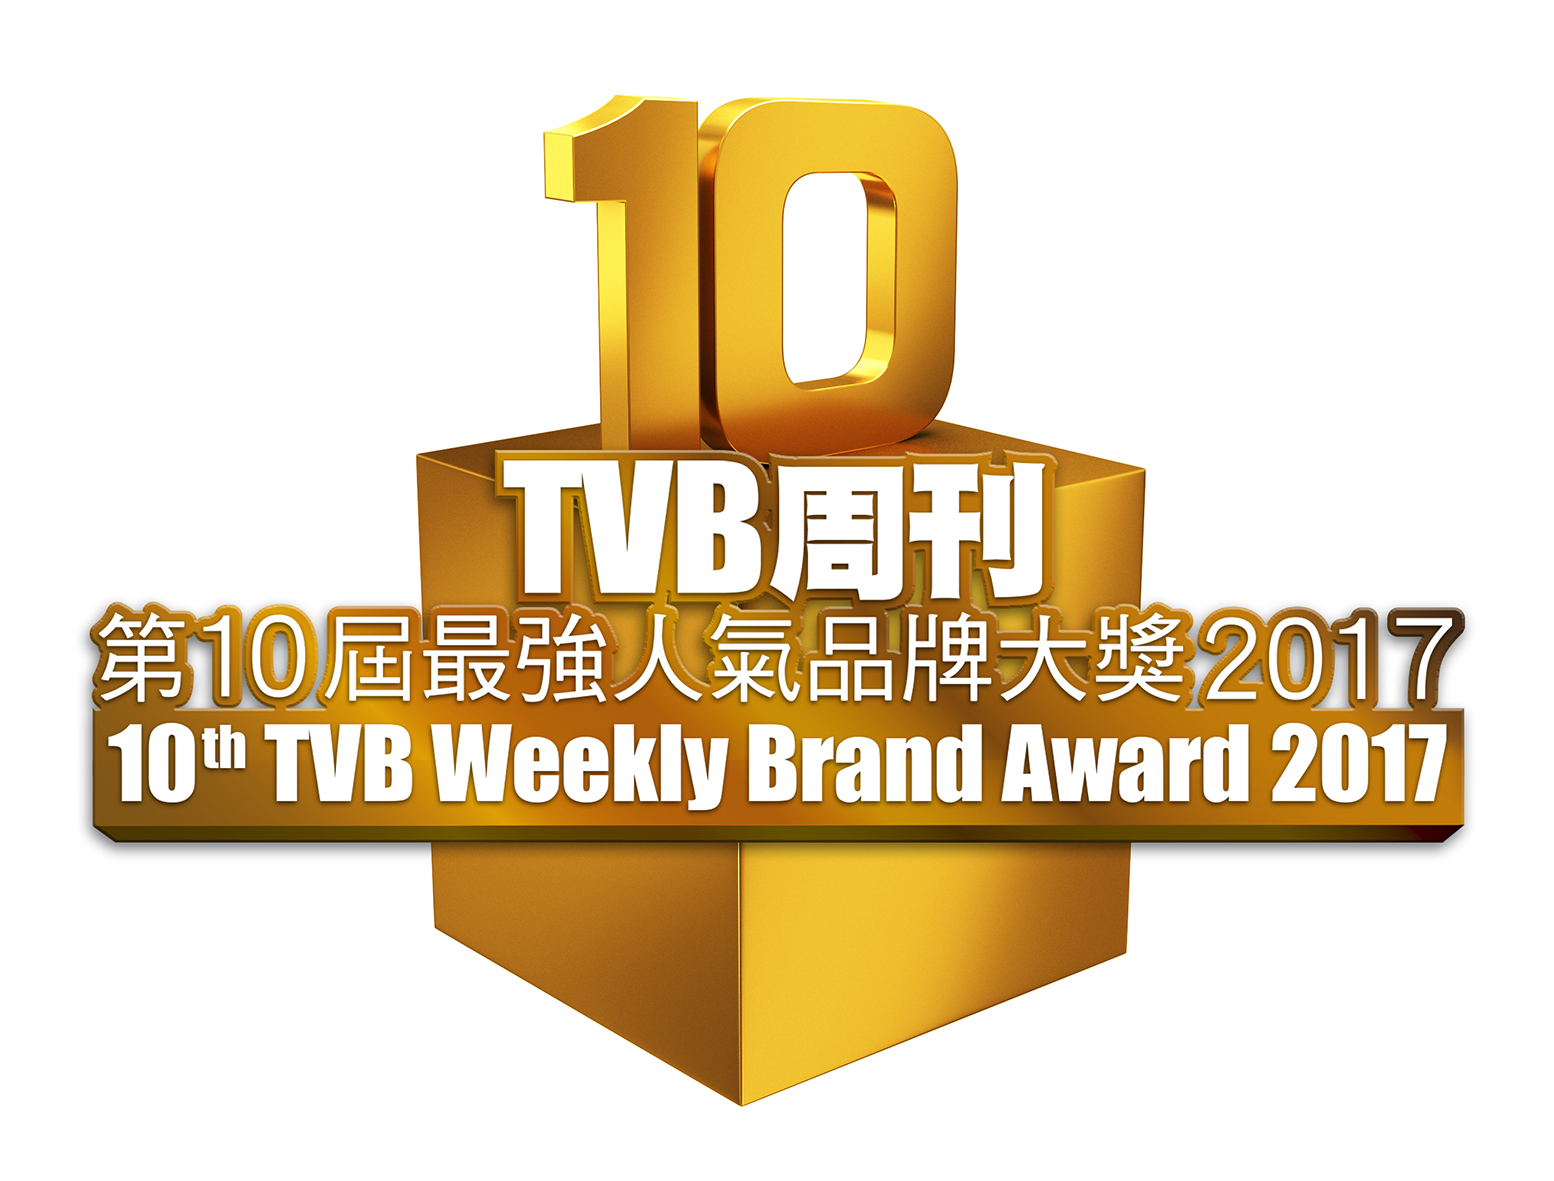 TVB WEEKLY THE MOST POPULAR BRAND 2008-2017